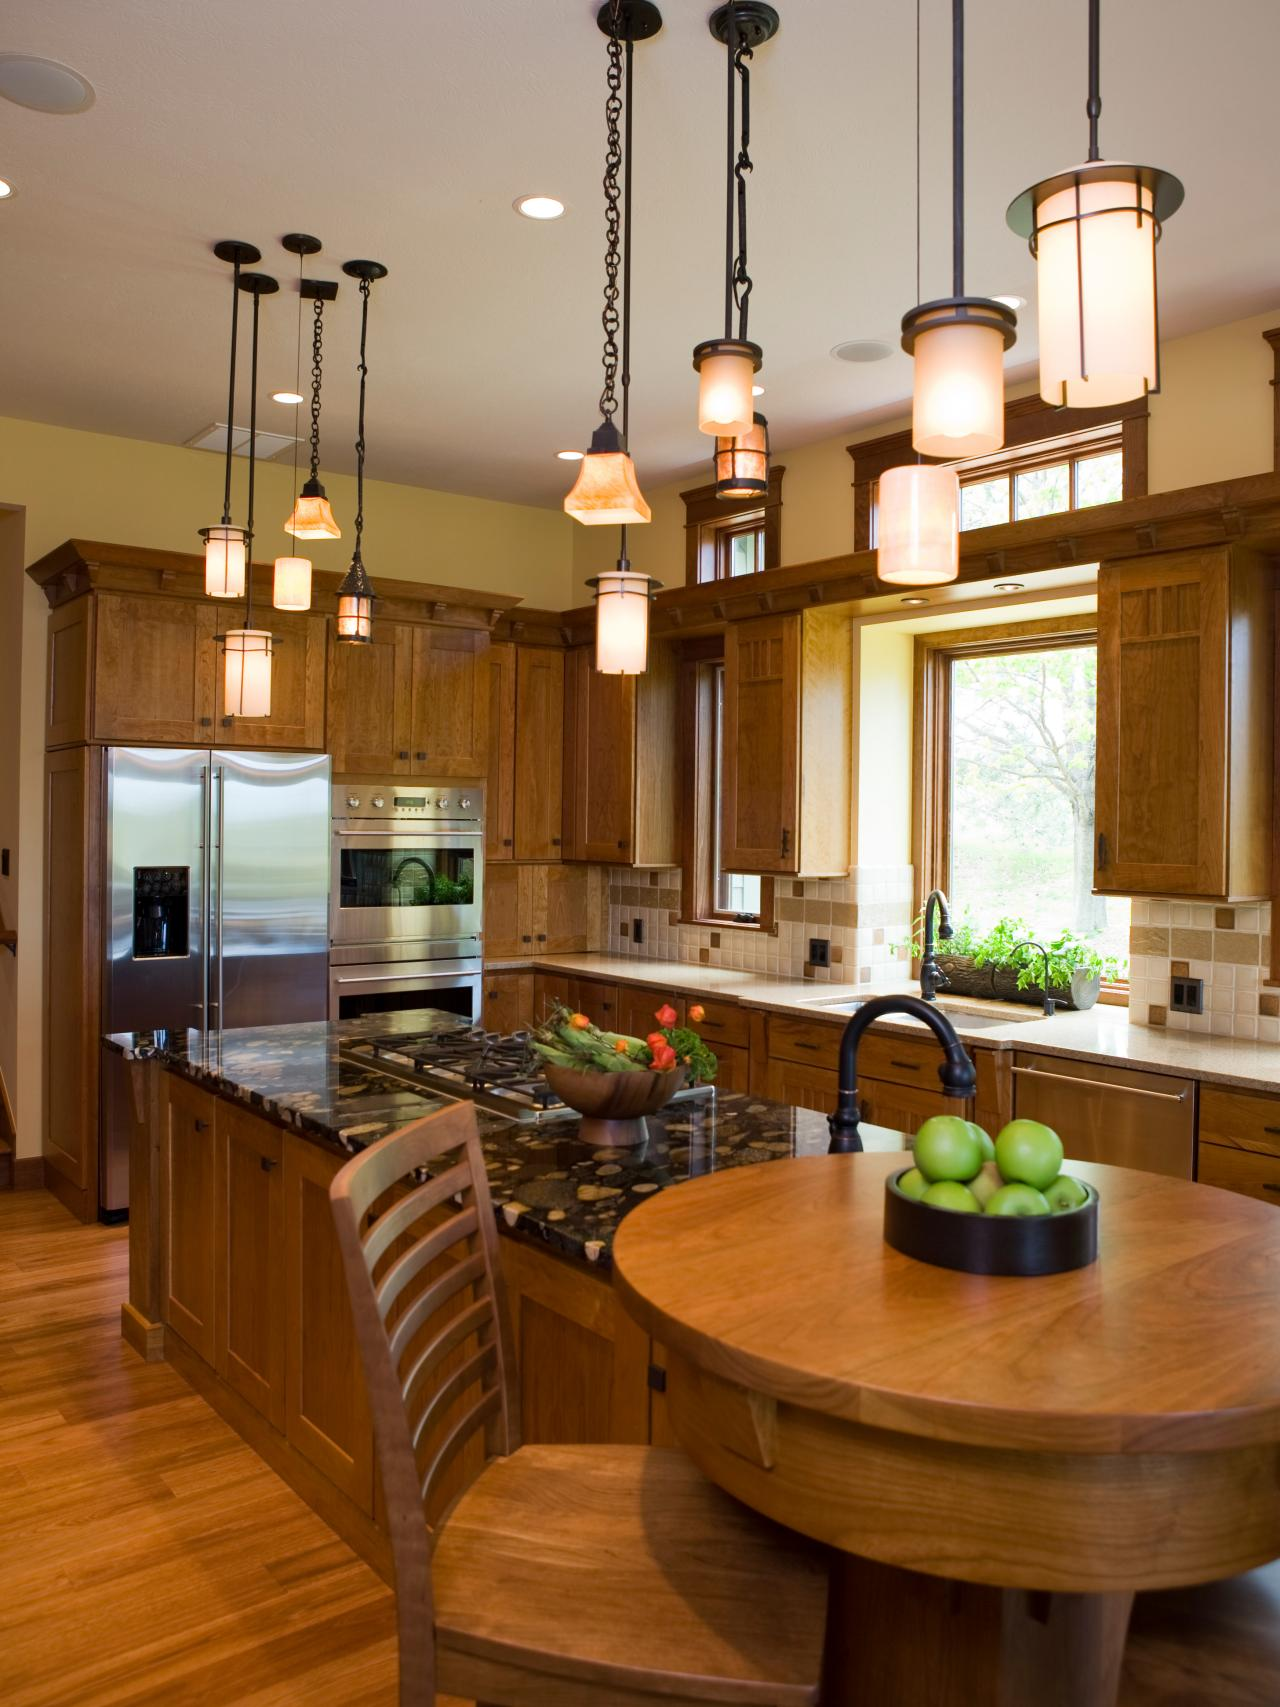 Kitchen Island Light Fixture Height